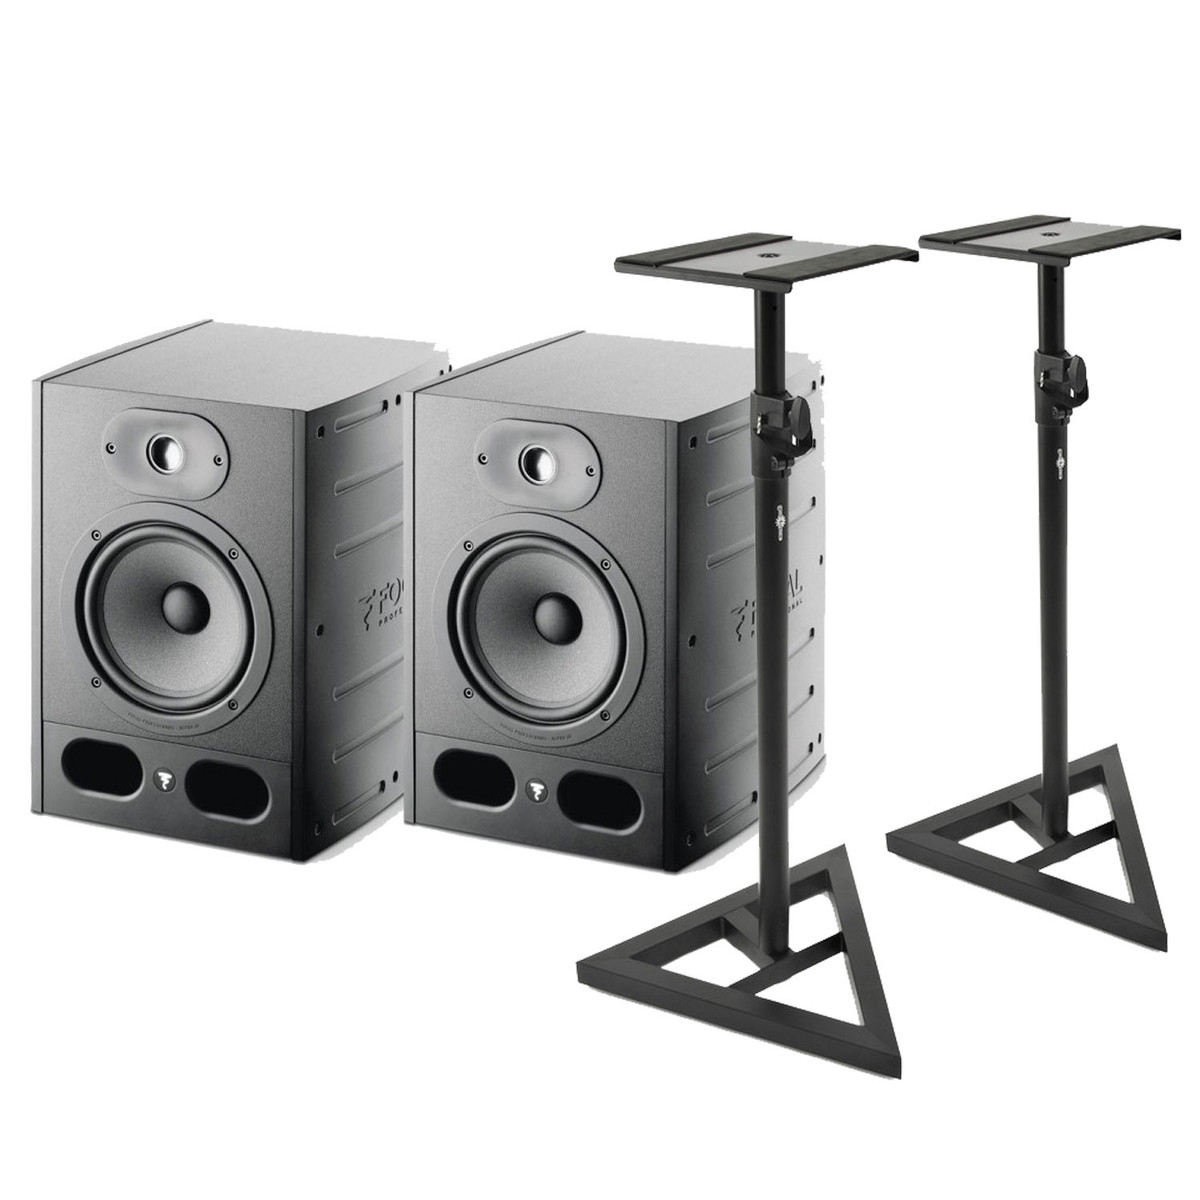 Image of Focal Alpha 65 Active Studio Monitors (Pair) with Stands